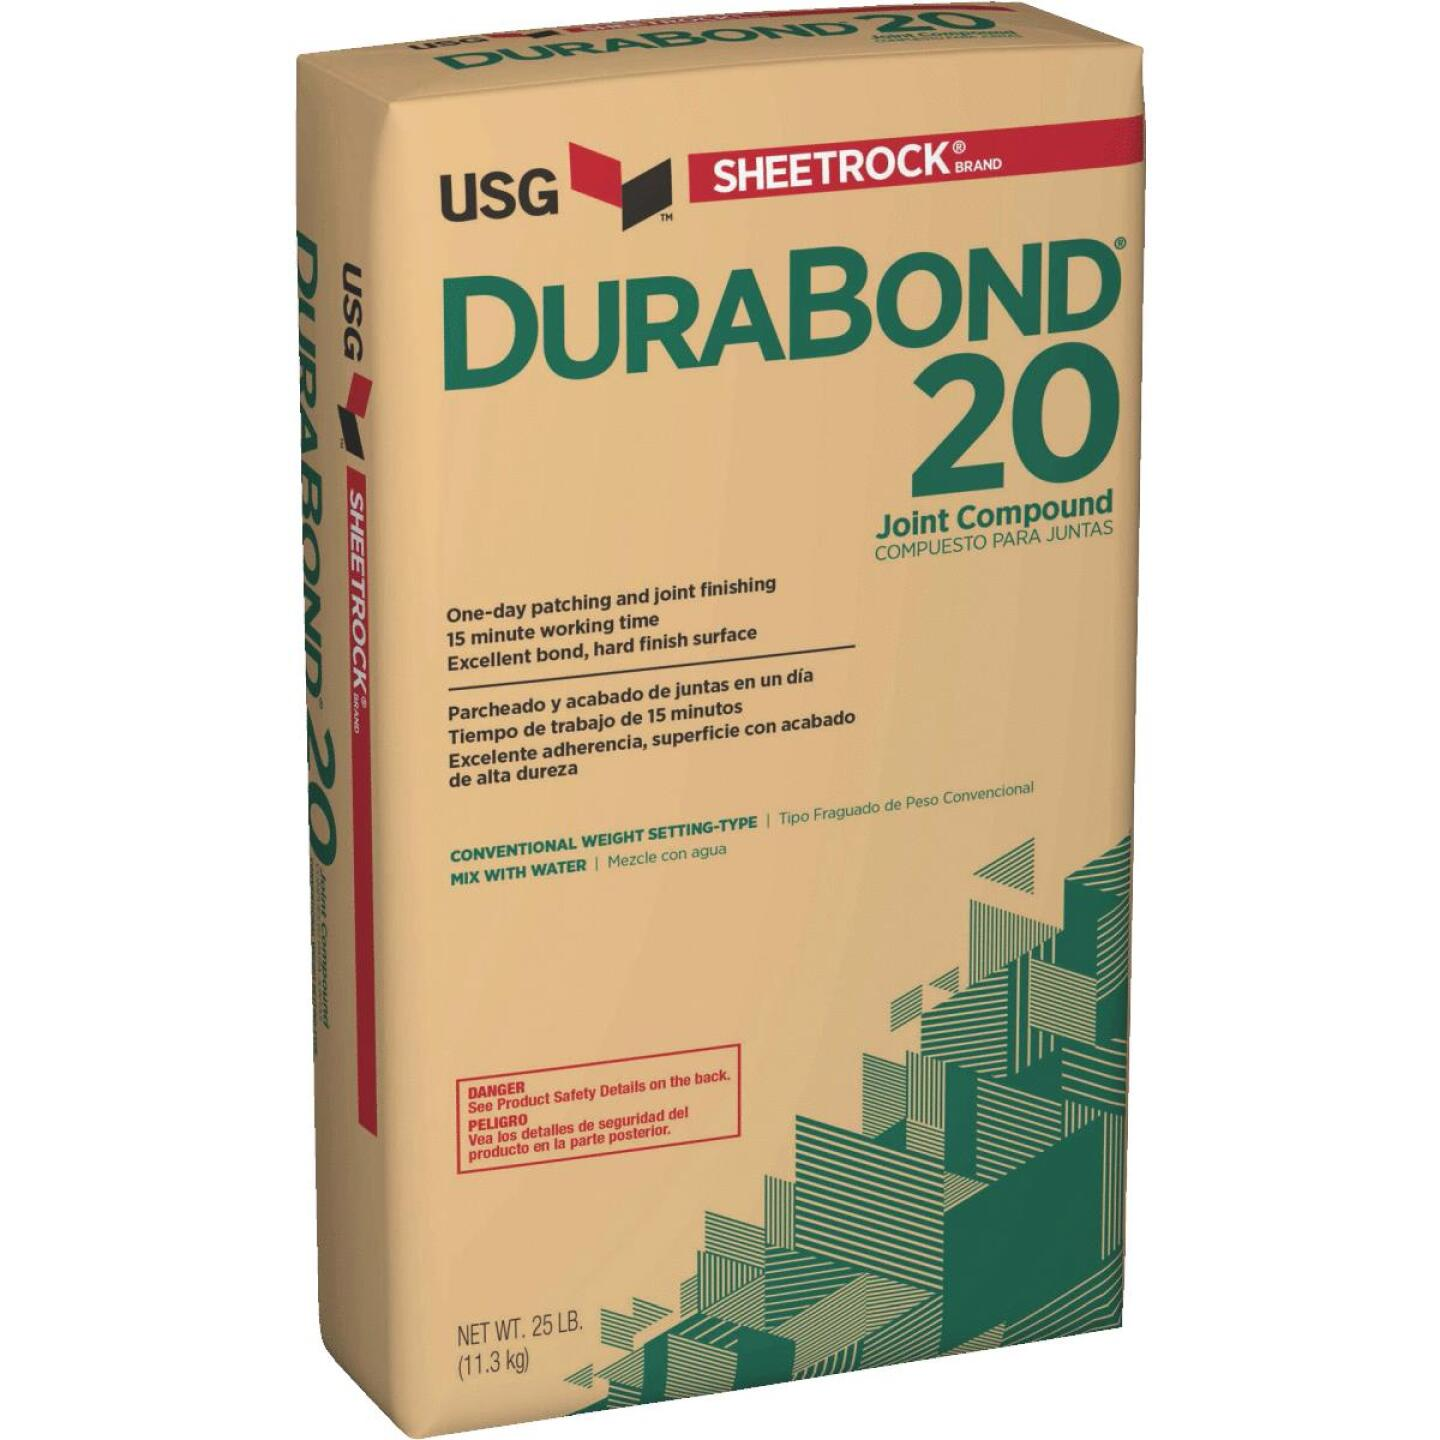 Sheetrock Durabond 20 Setting Type 25 Lb. Drywall Joint Compound Image 1